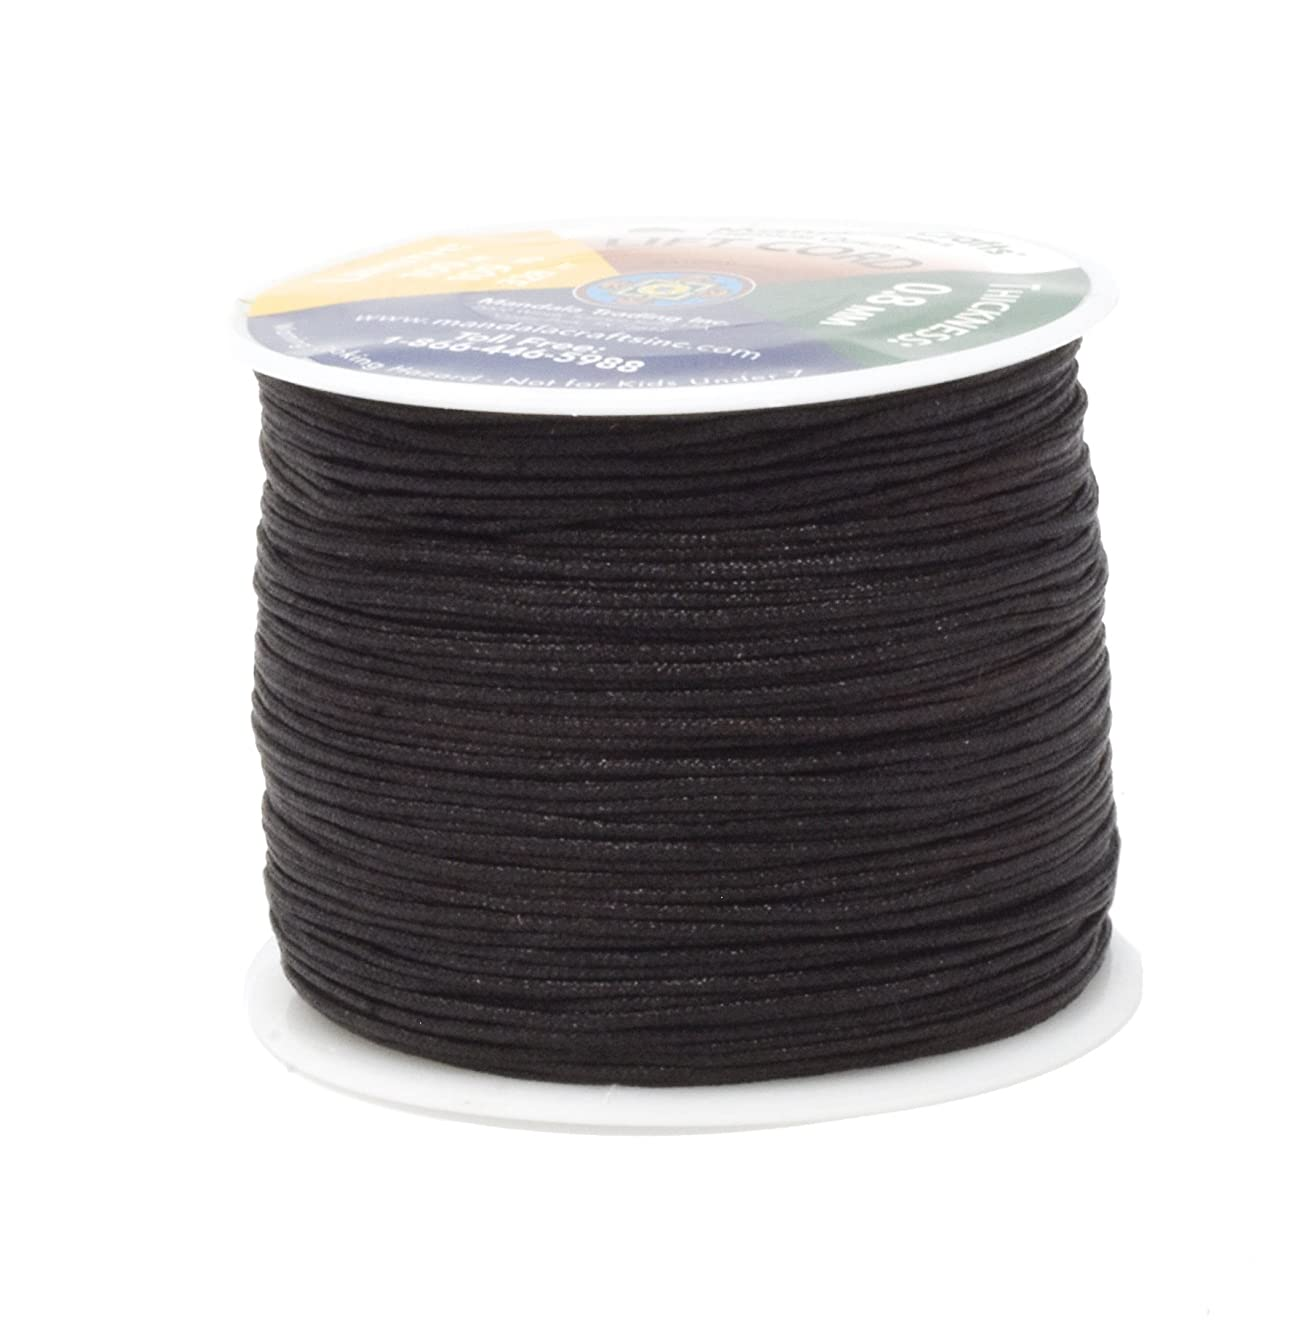 Mandala Crafts Blinds String, Lift Cord Replacement from Braided Nylon for RVs, Windows, Shades, and Rollers (0.8mm, Chocolate Brown)